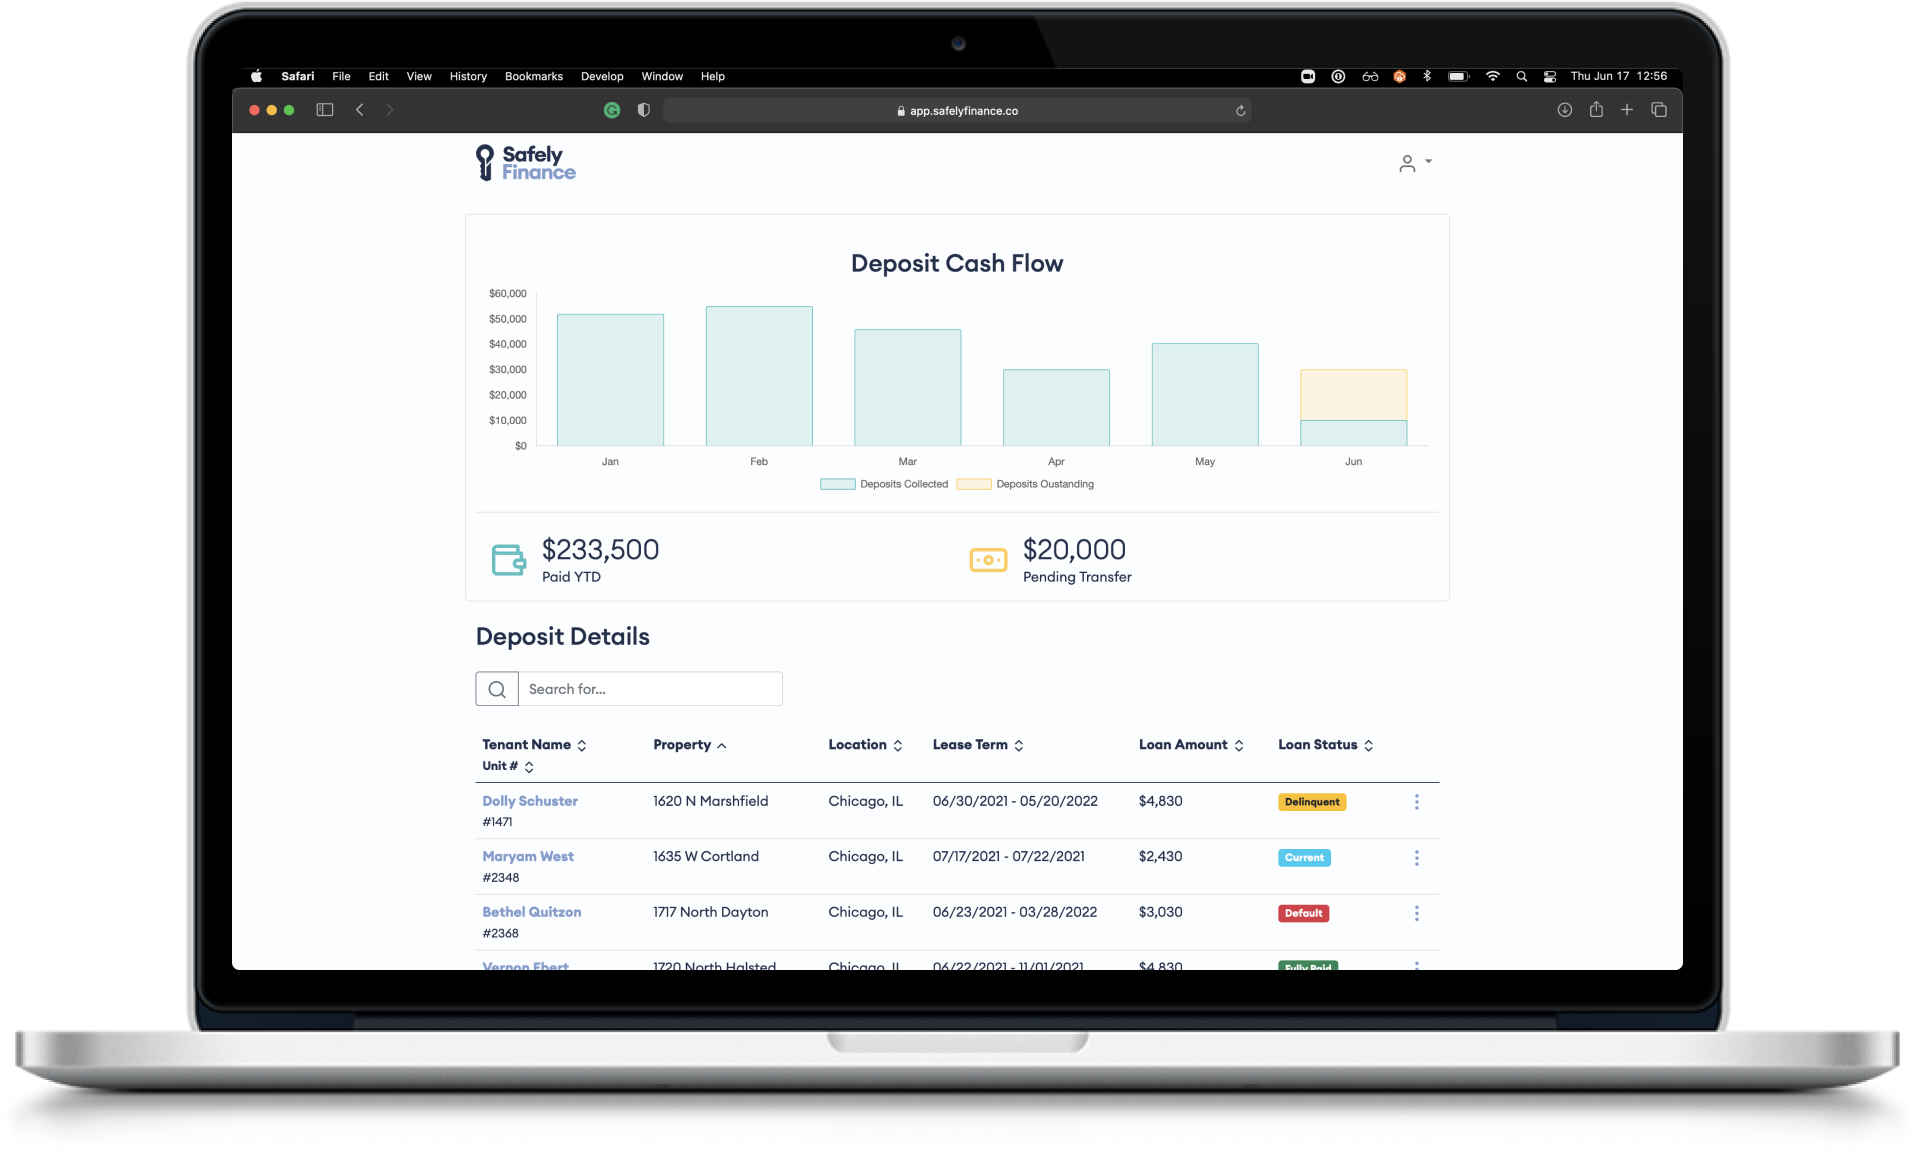 """Safely Finance Security Deposit and Fees Property Dashboard displayed on a 13"""" MacBook laptop in a web browser"""